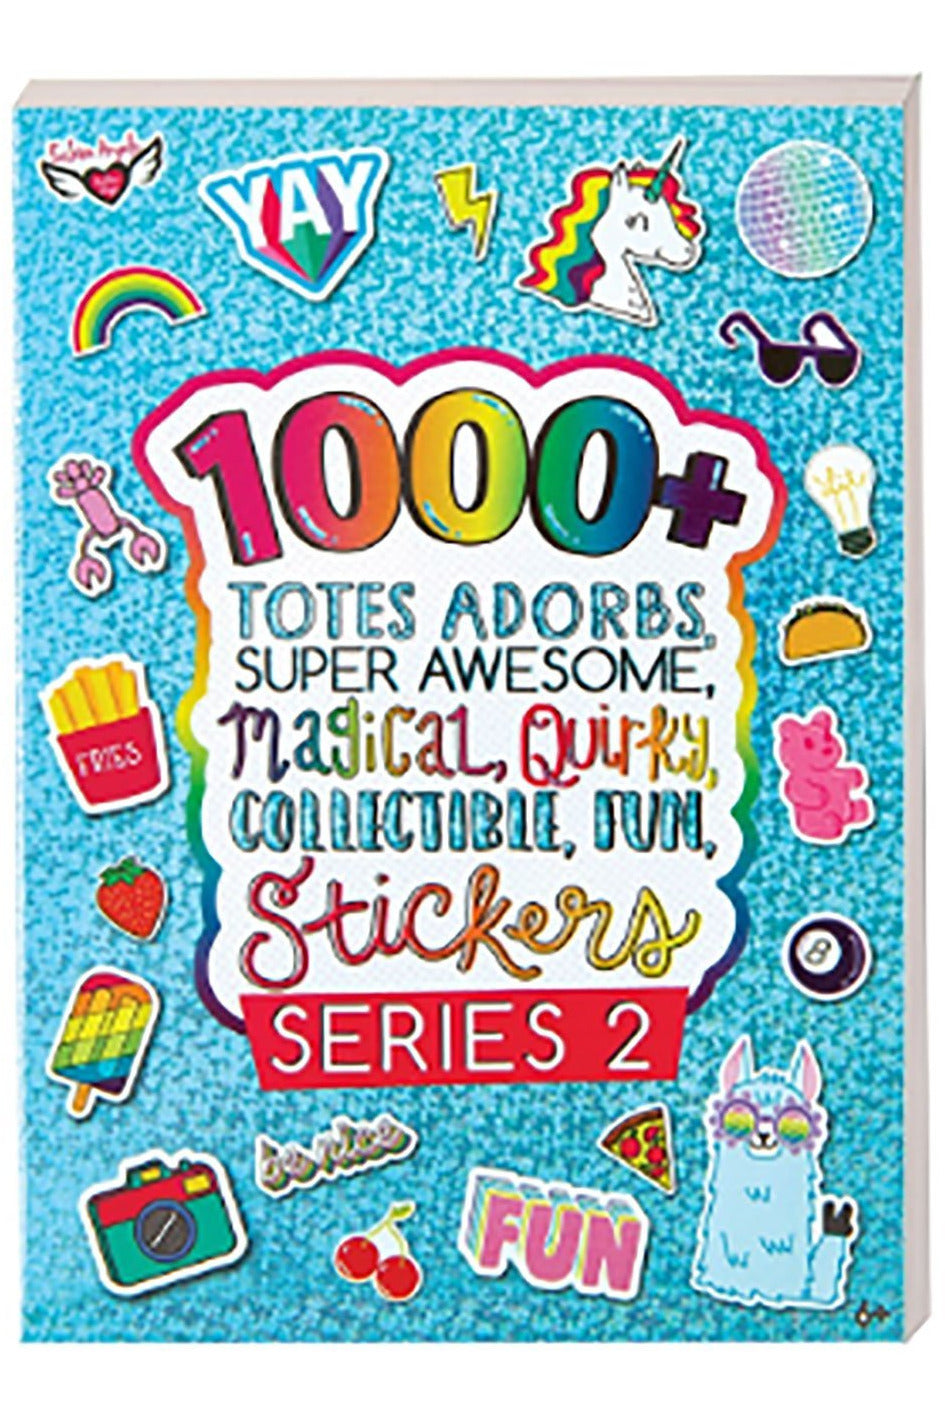 1000+ SUPER AWESOME STICKERS